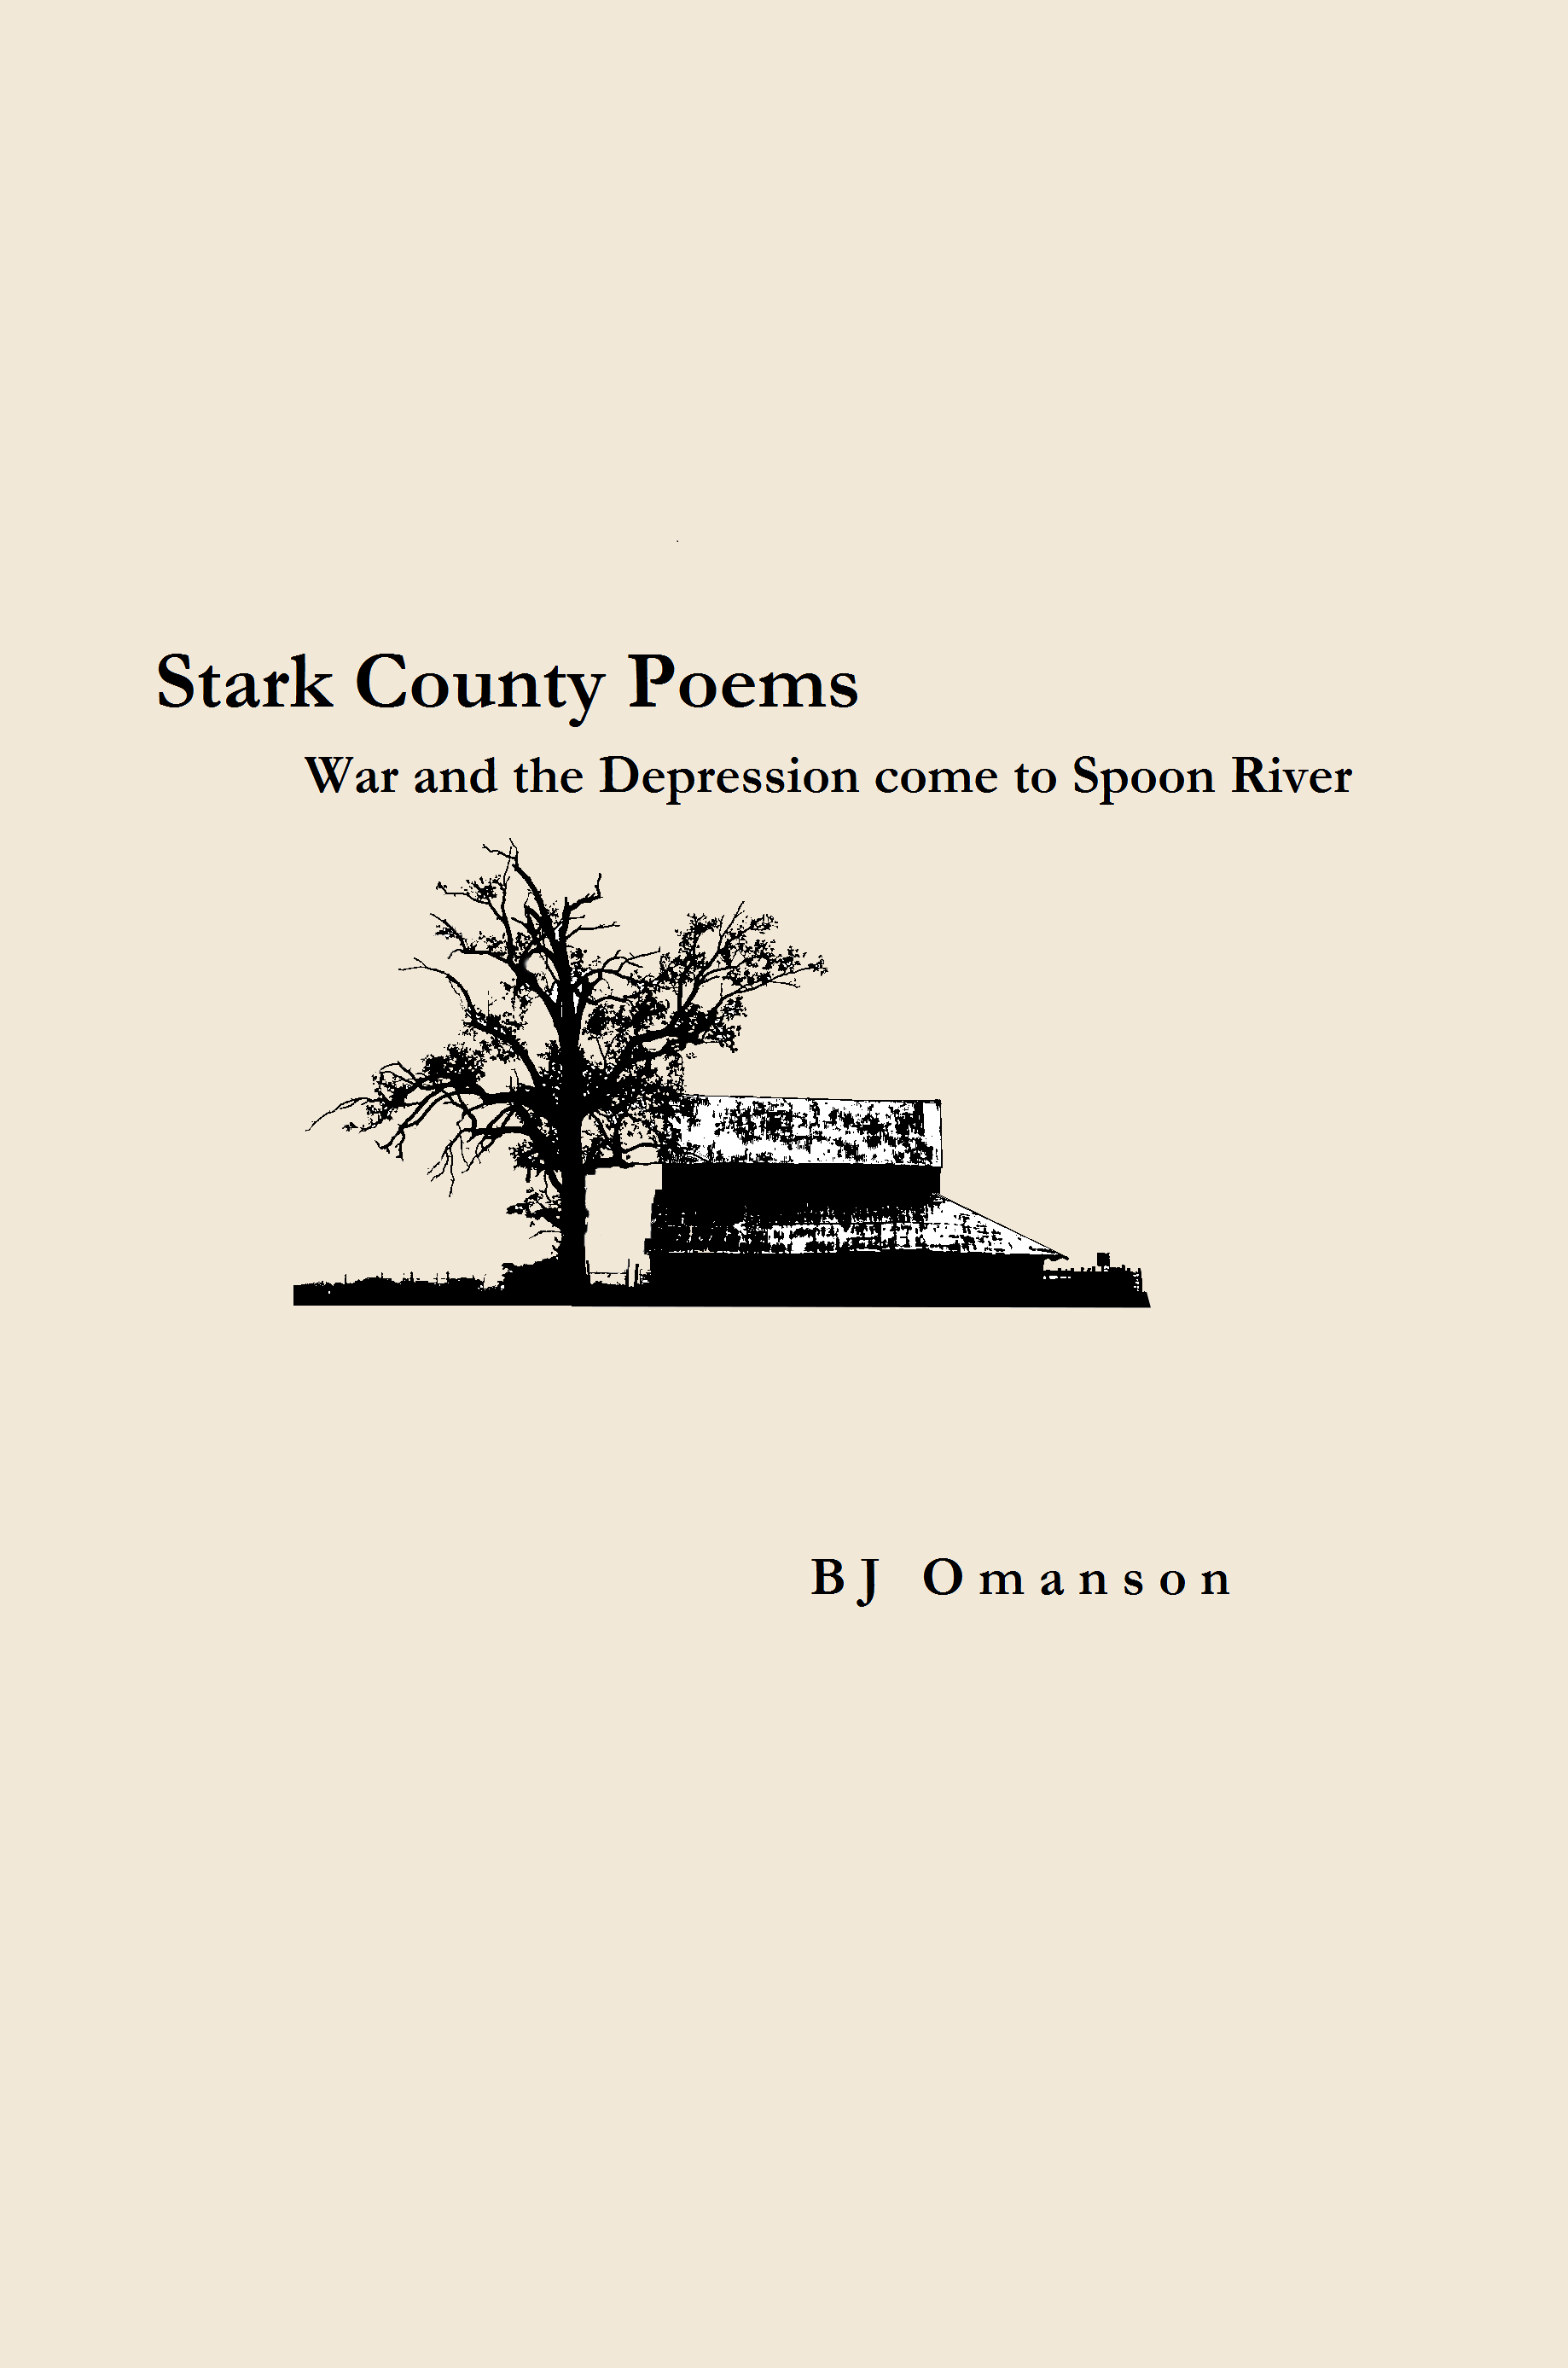 Stark County Poems